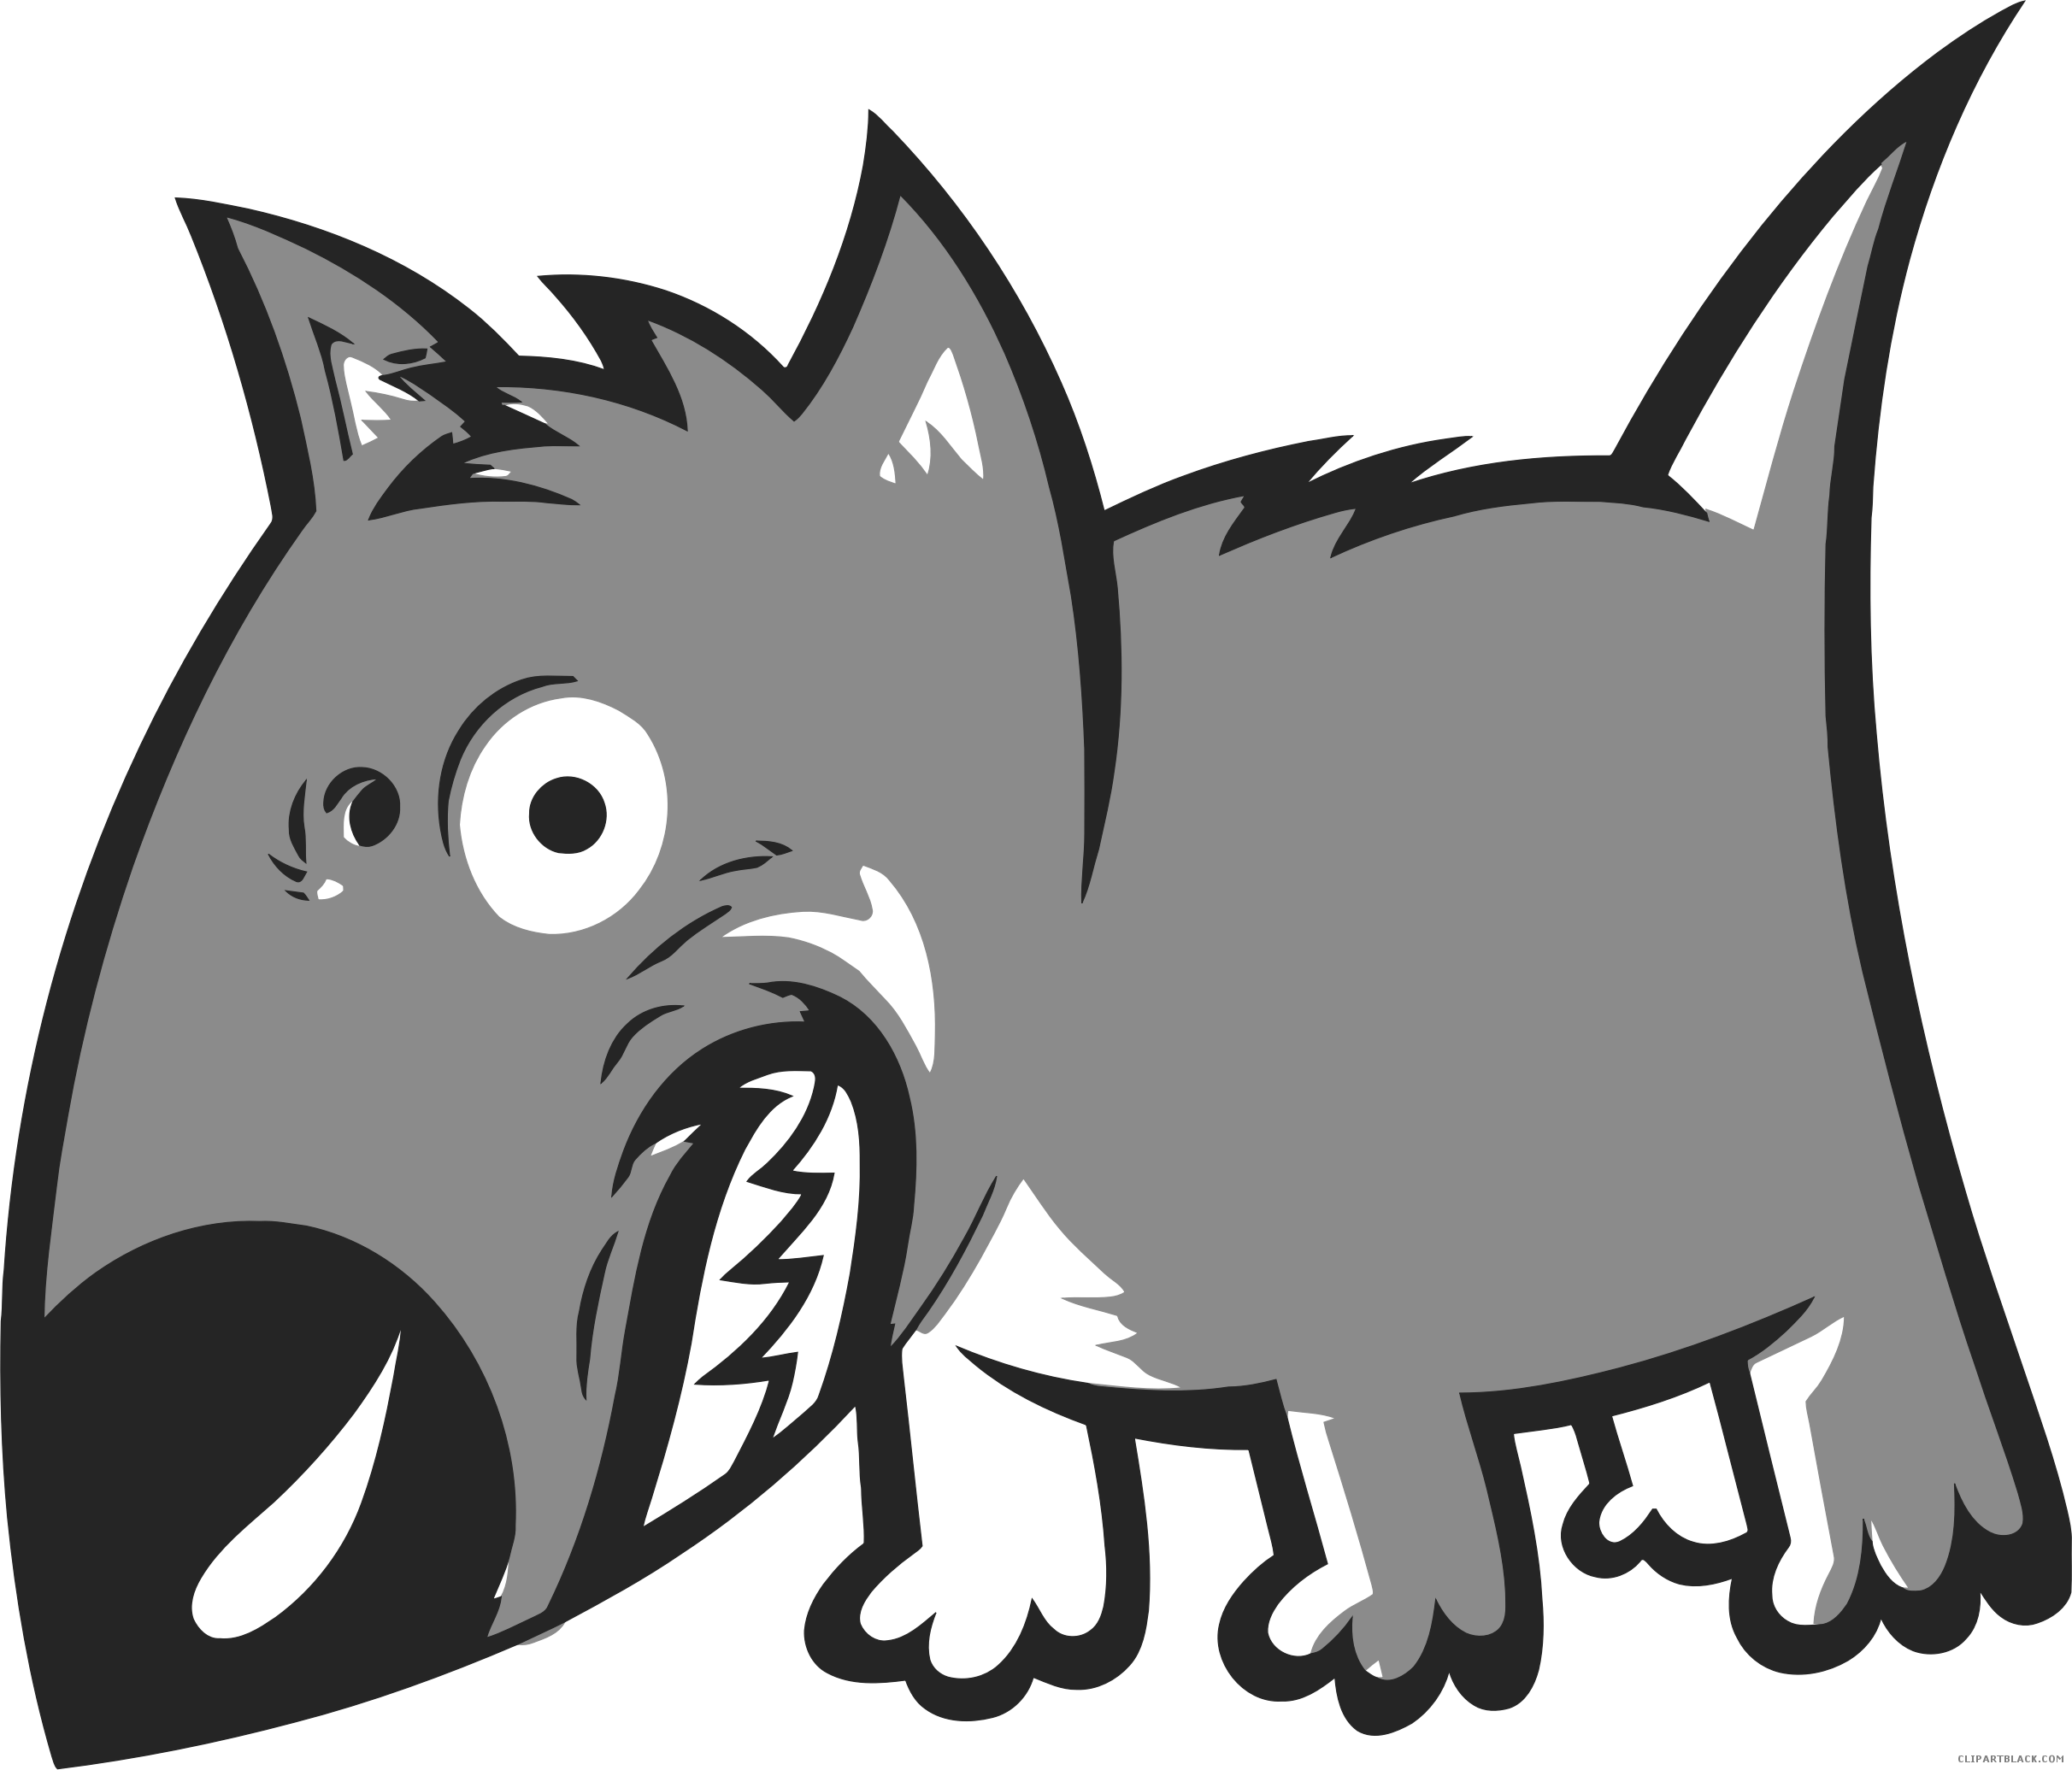 Dog poop clipart free. Angry clipartblack com animal